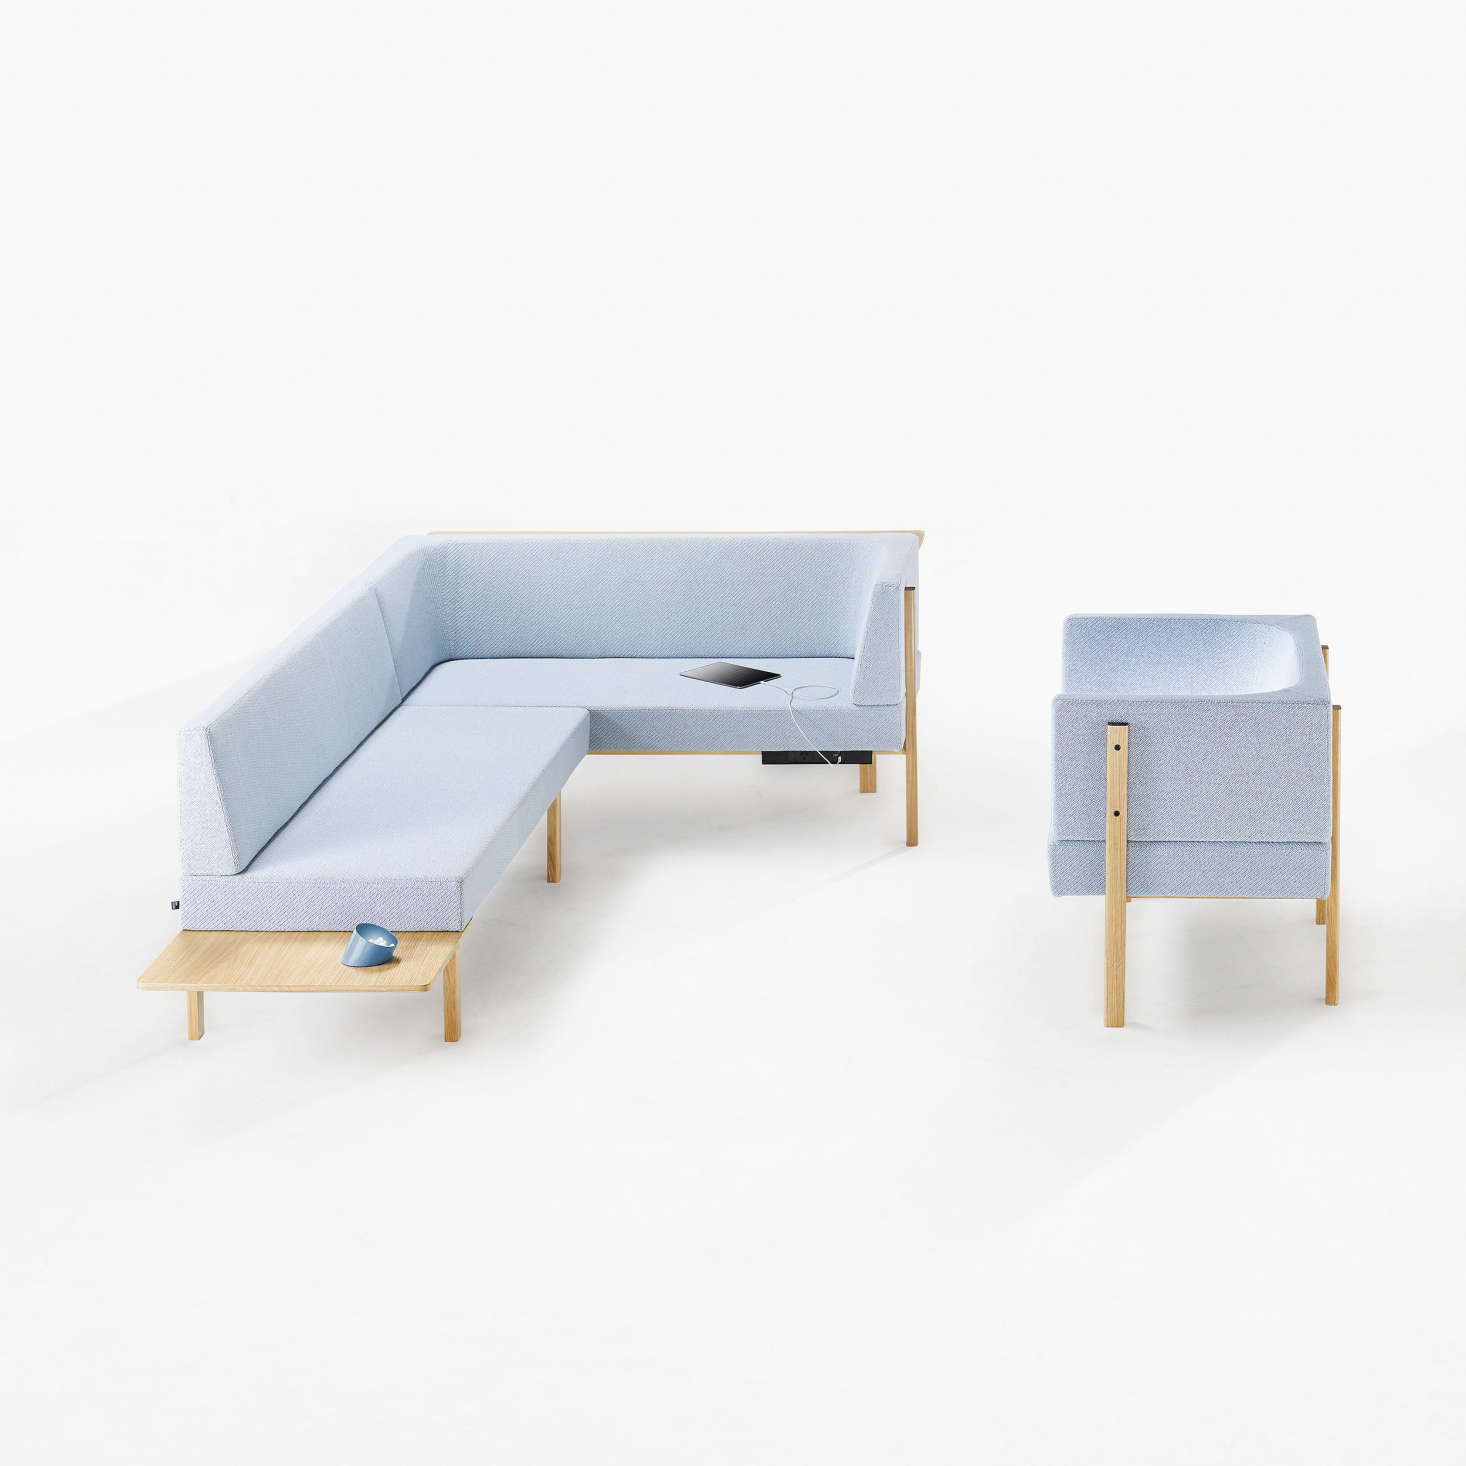 Les Basic: A Modular Furniture and Accessories Line with Millennials in Mind